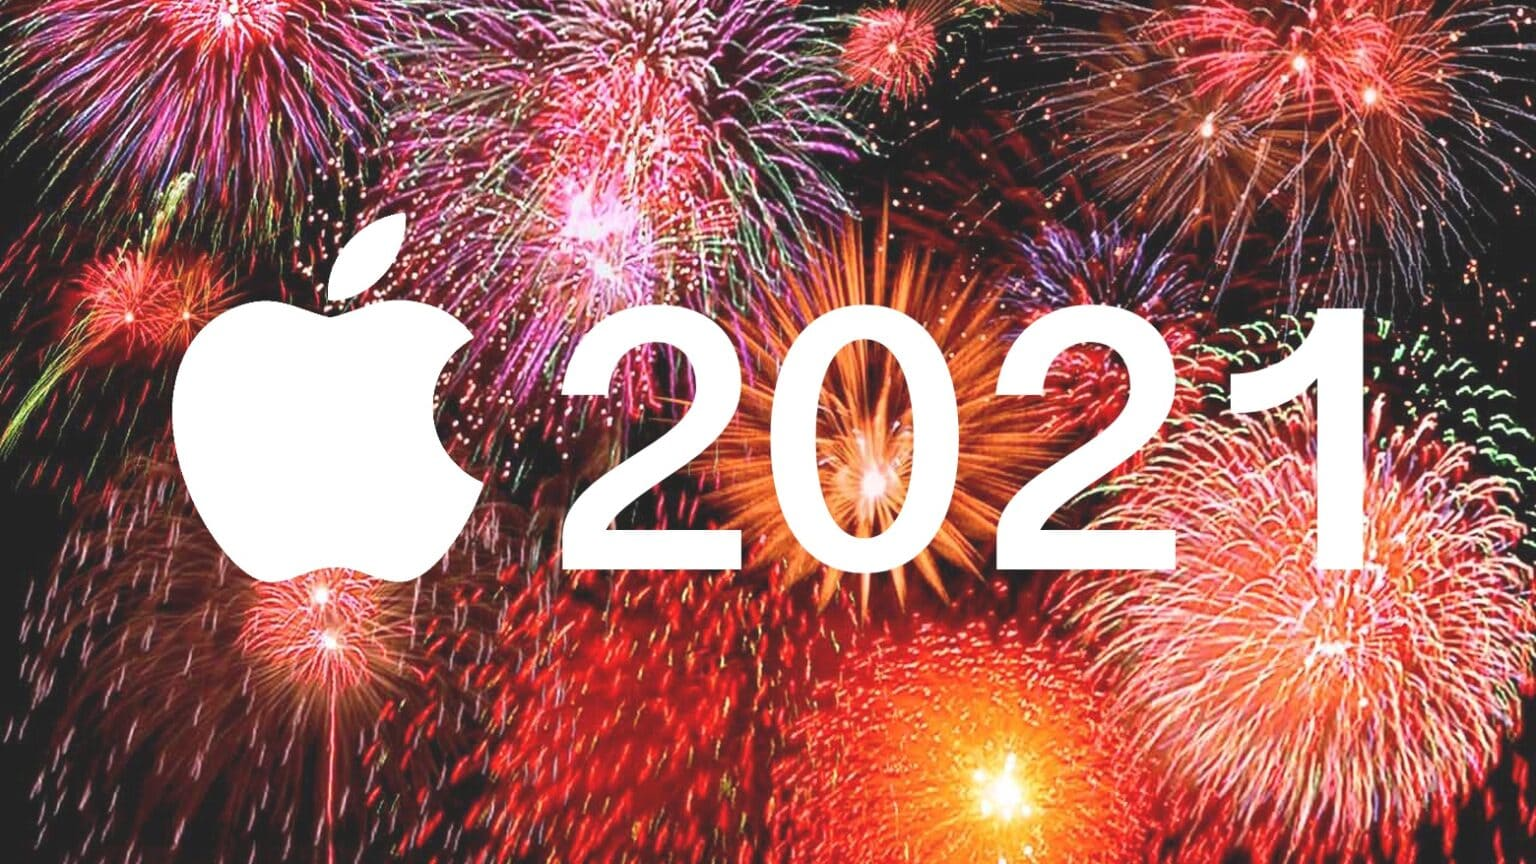 Expect Apple 2021 to bring exciting new MacBooks, iPads, Apple Watch features.